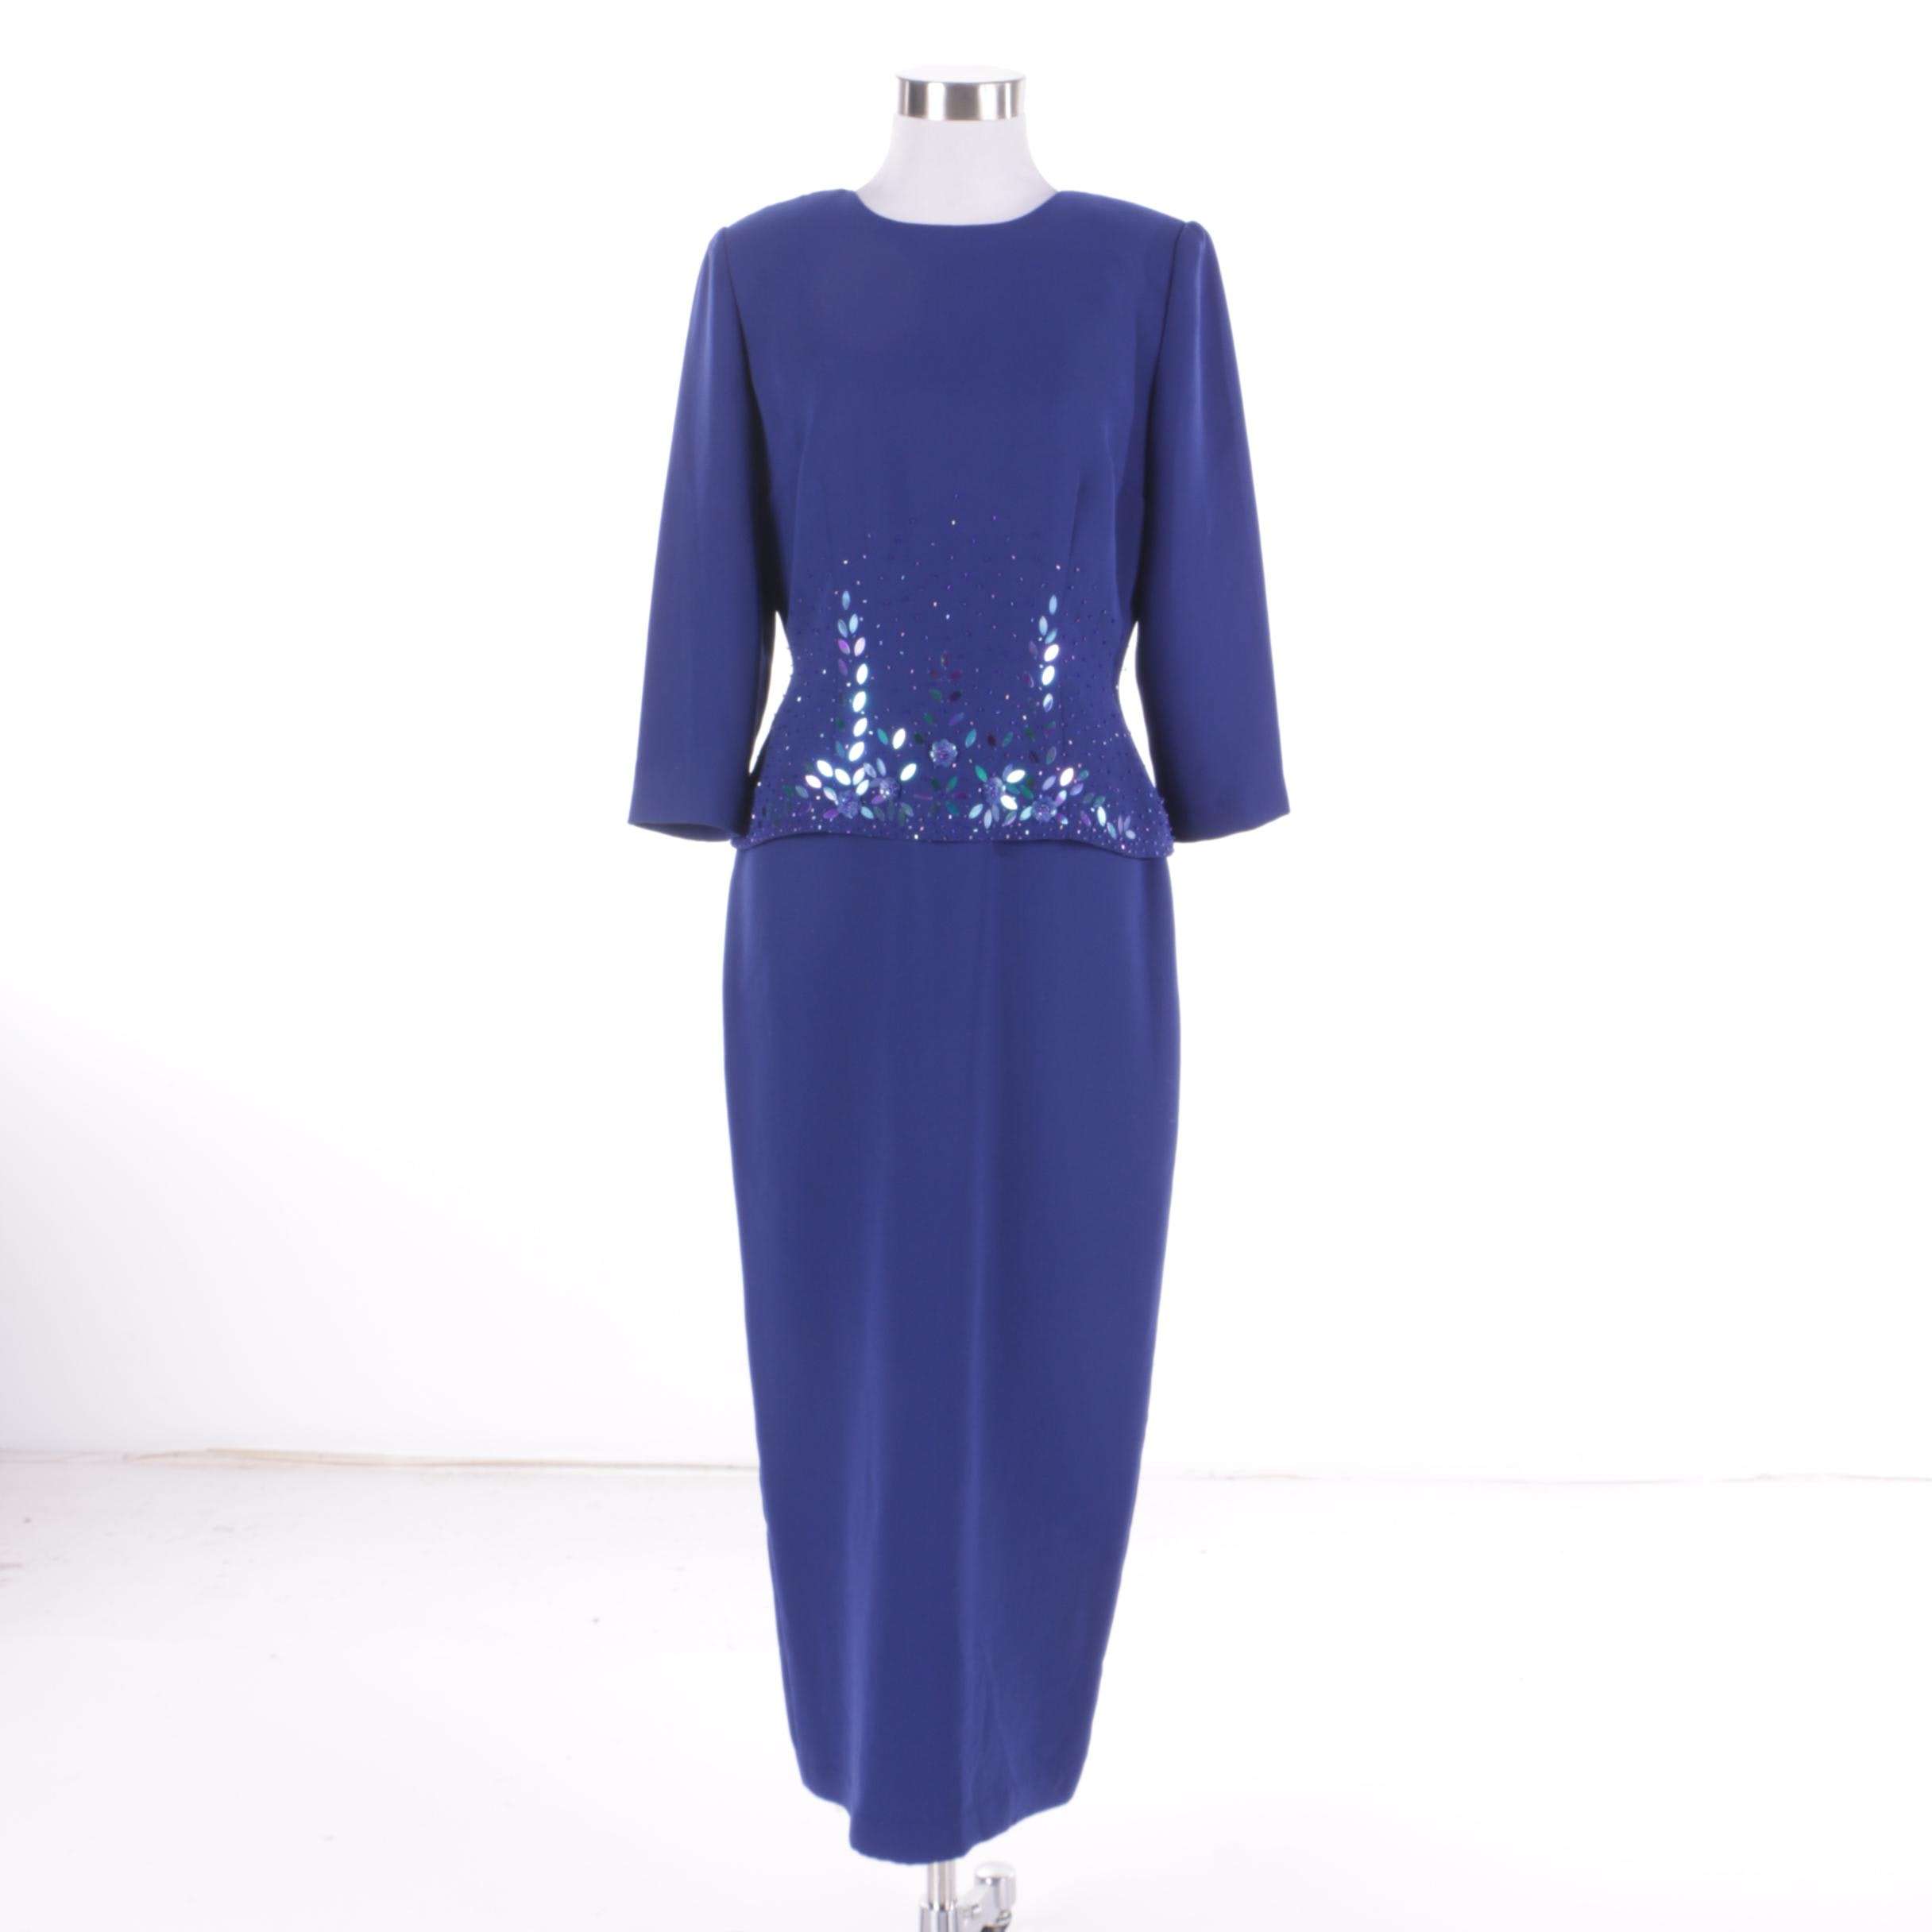 Women's Donna Morgan Dress with Beaded Accents